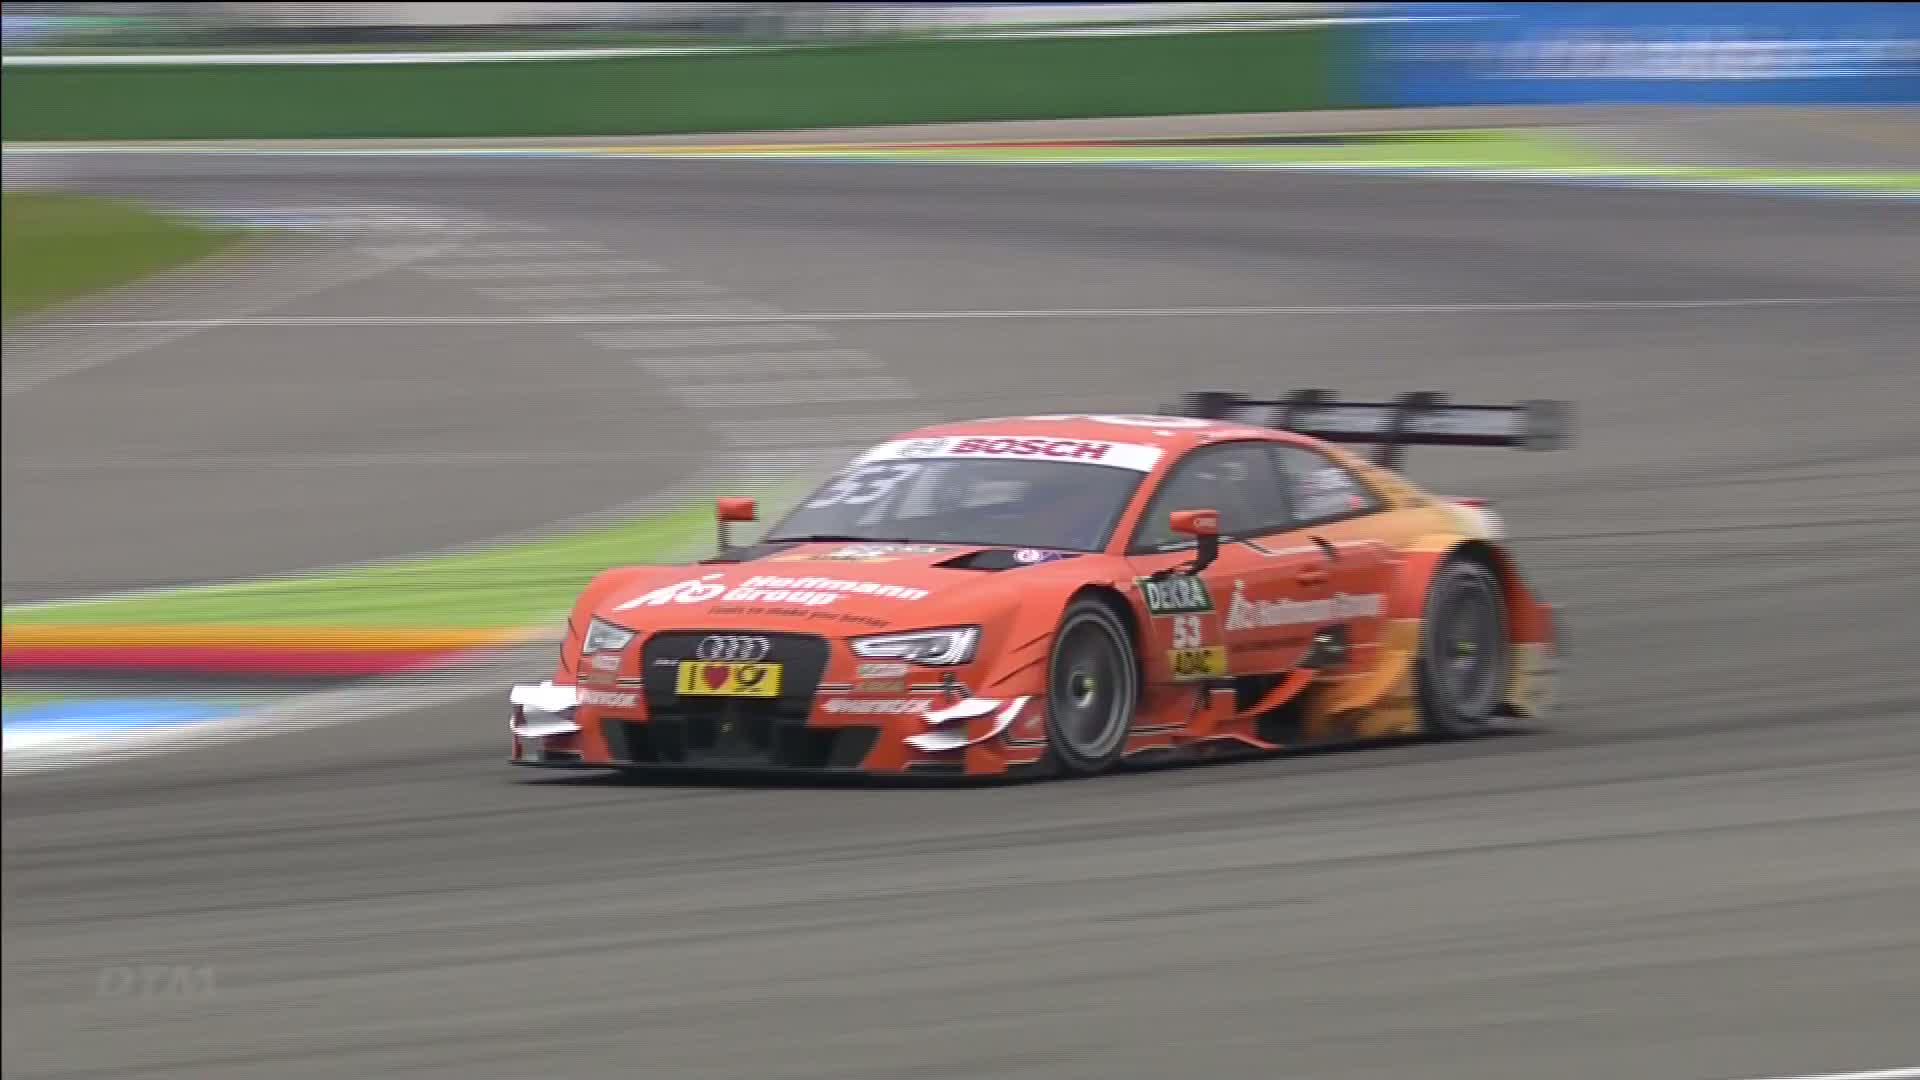 60 Seconds of Audi Sport 97/2015 - DTM Hockenheim, Race 2